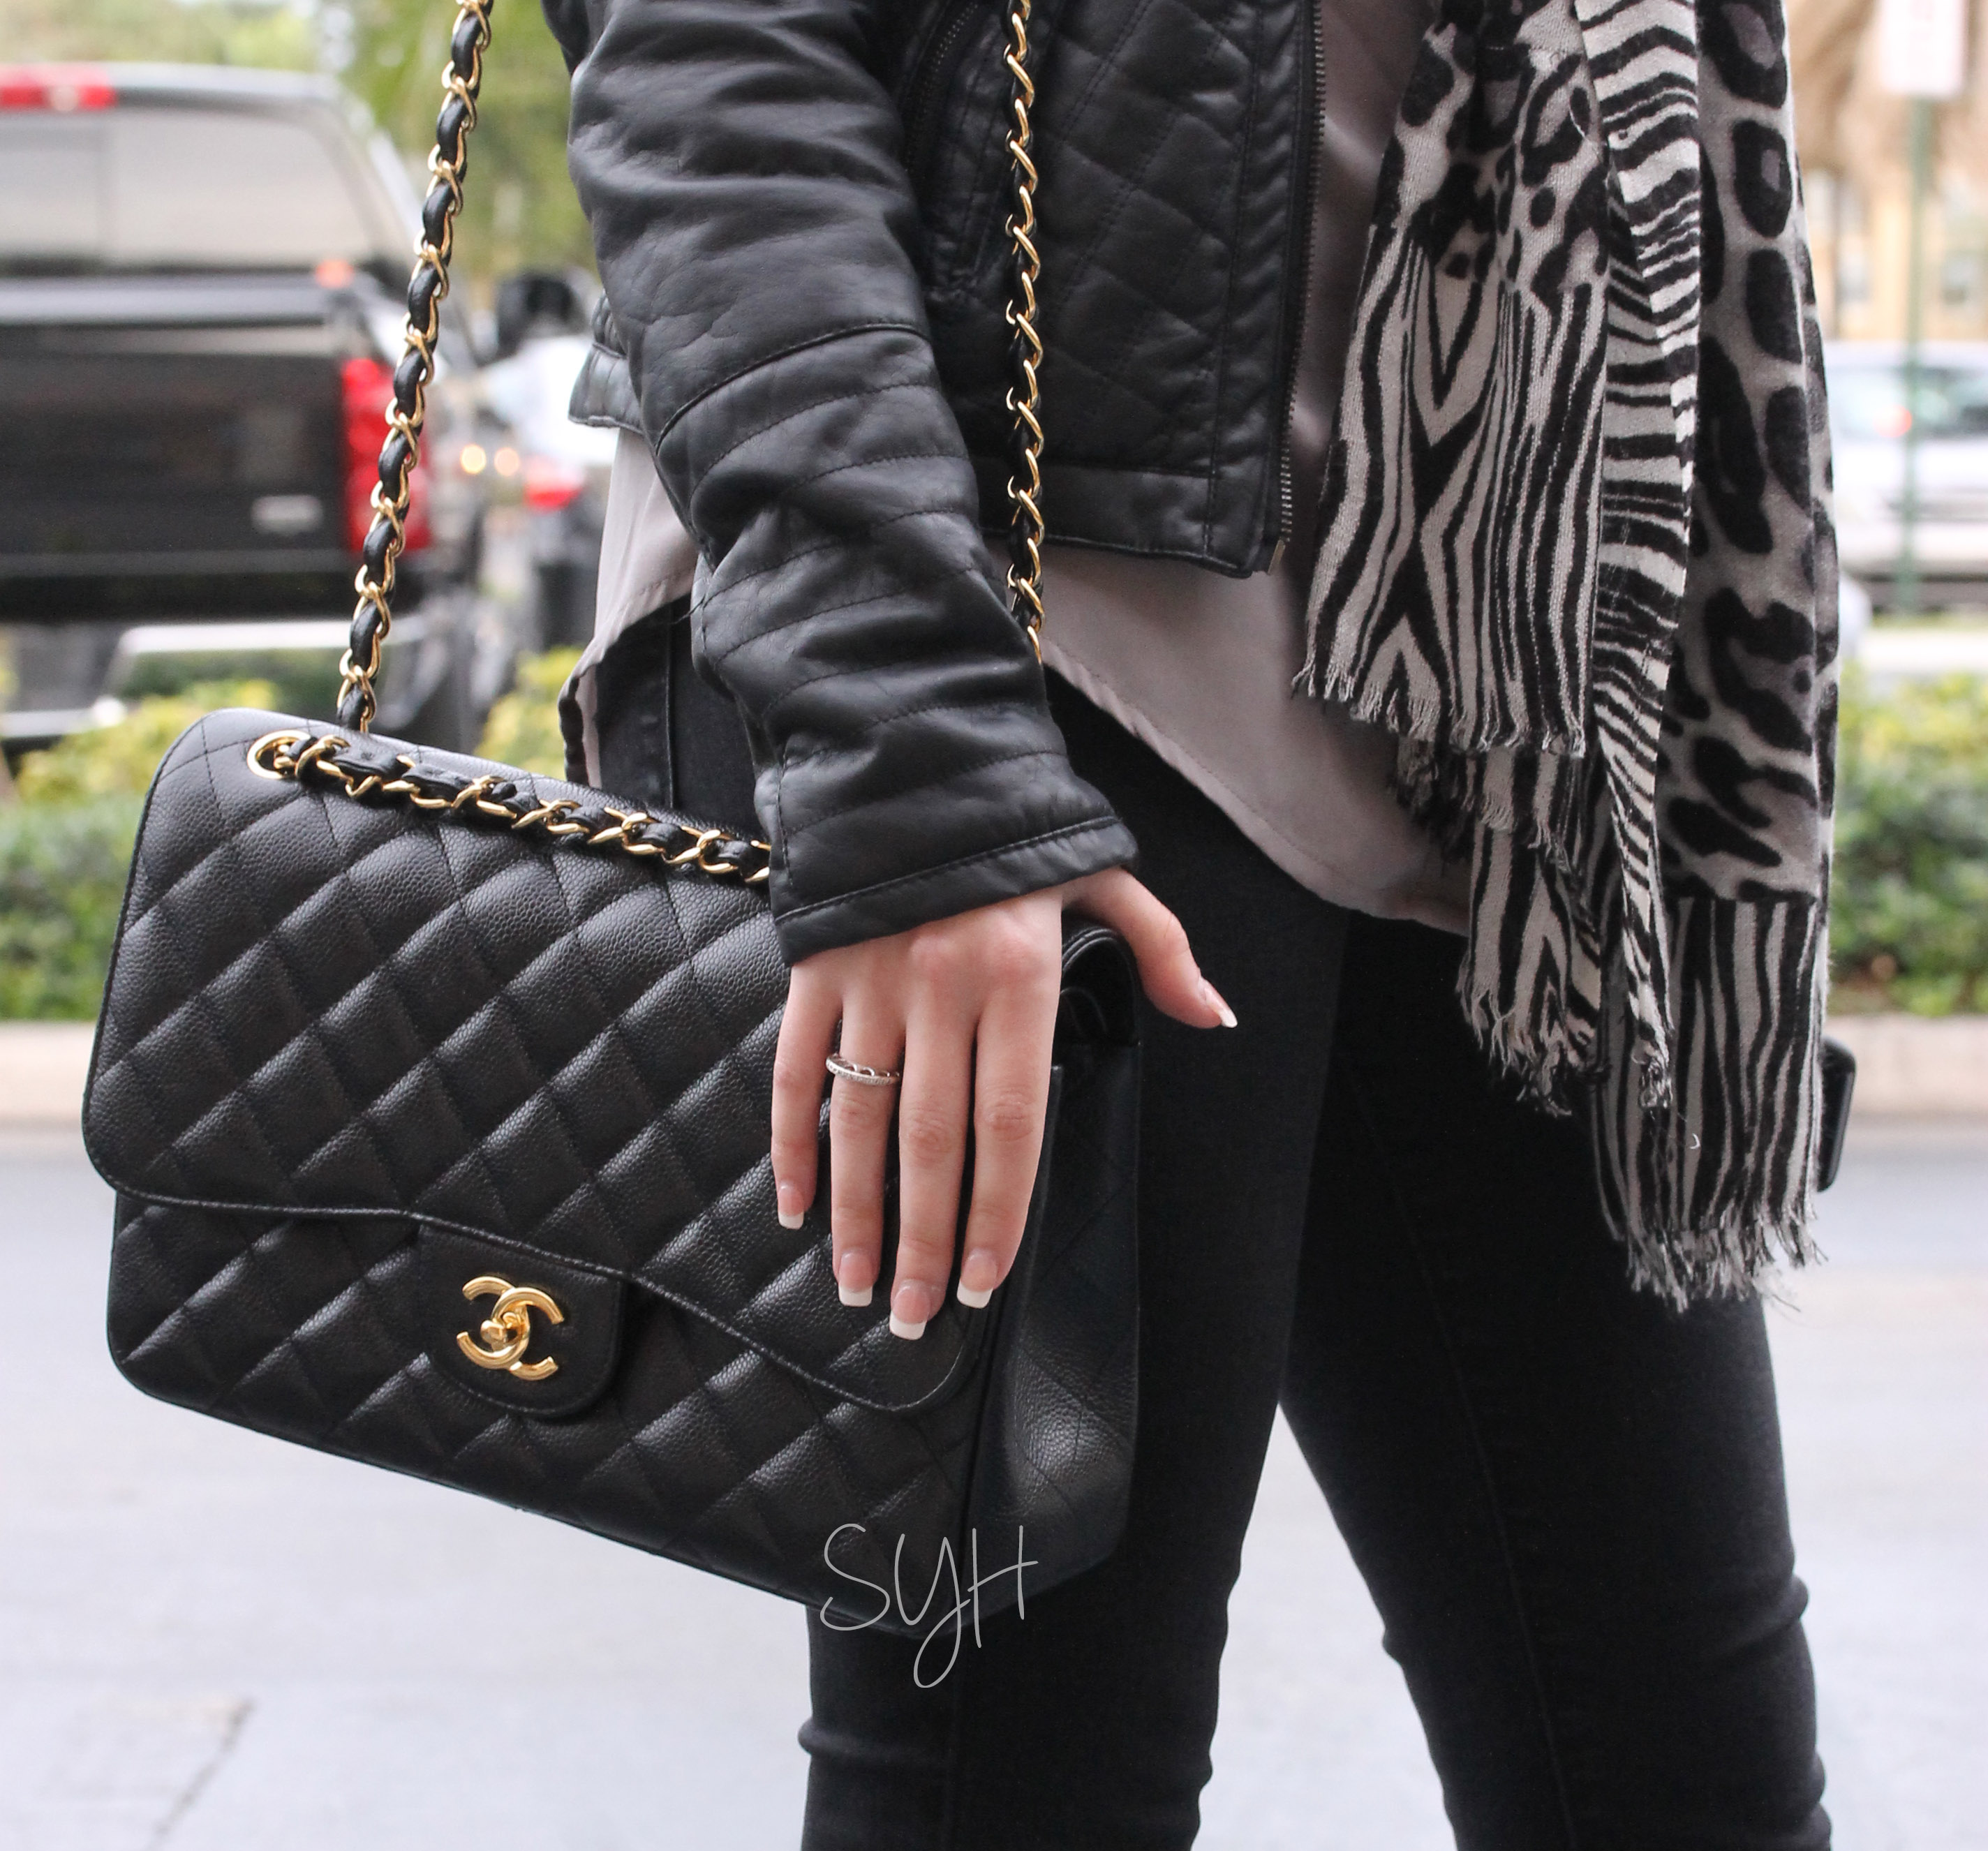 Chanel Maxi Flap Bag Boca Raton